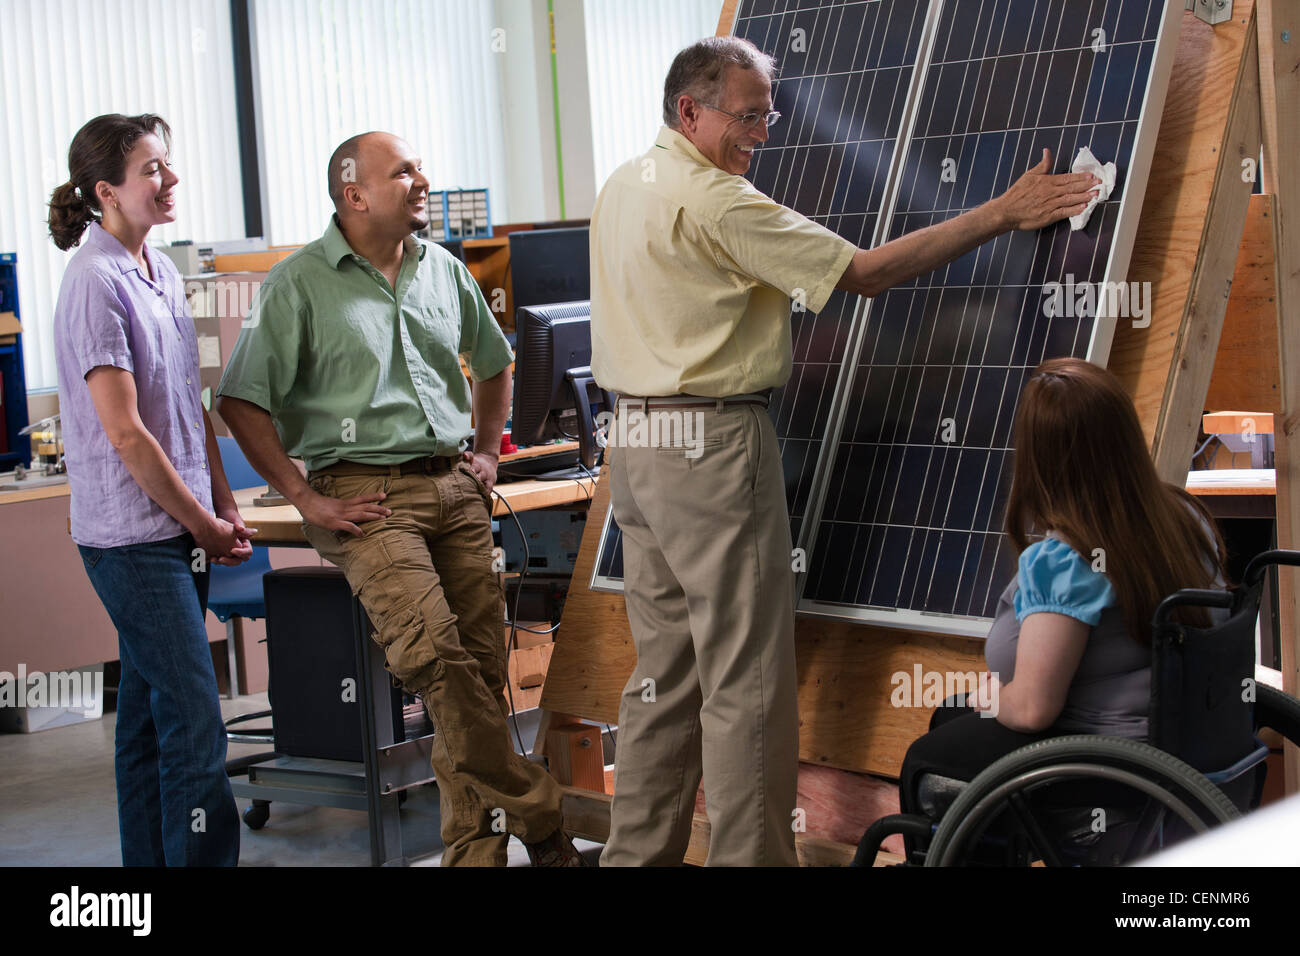 Engineering students watching professor cleaning photovoltaic panel to demonstrate improvement in efficiency - Stock Image